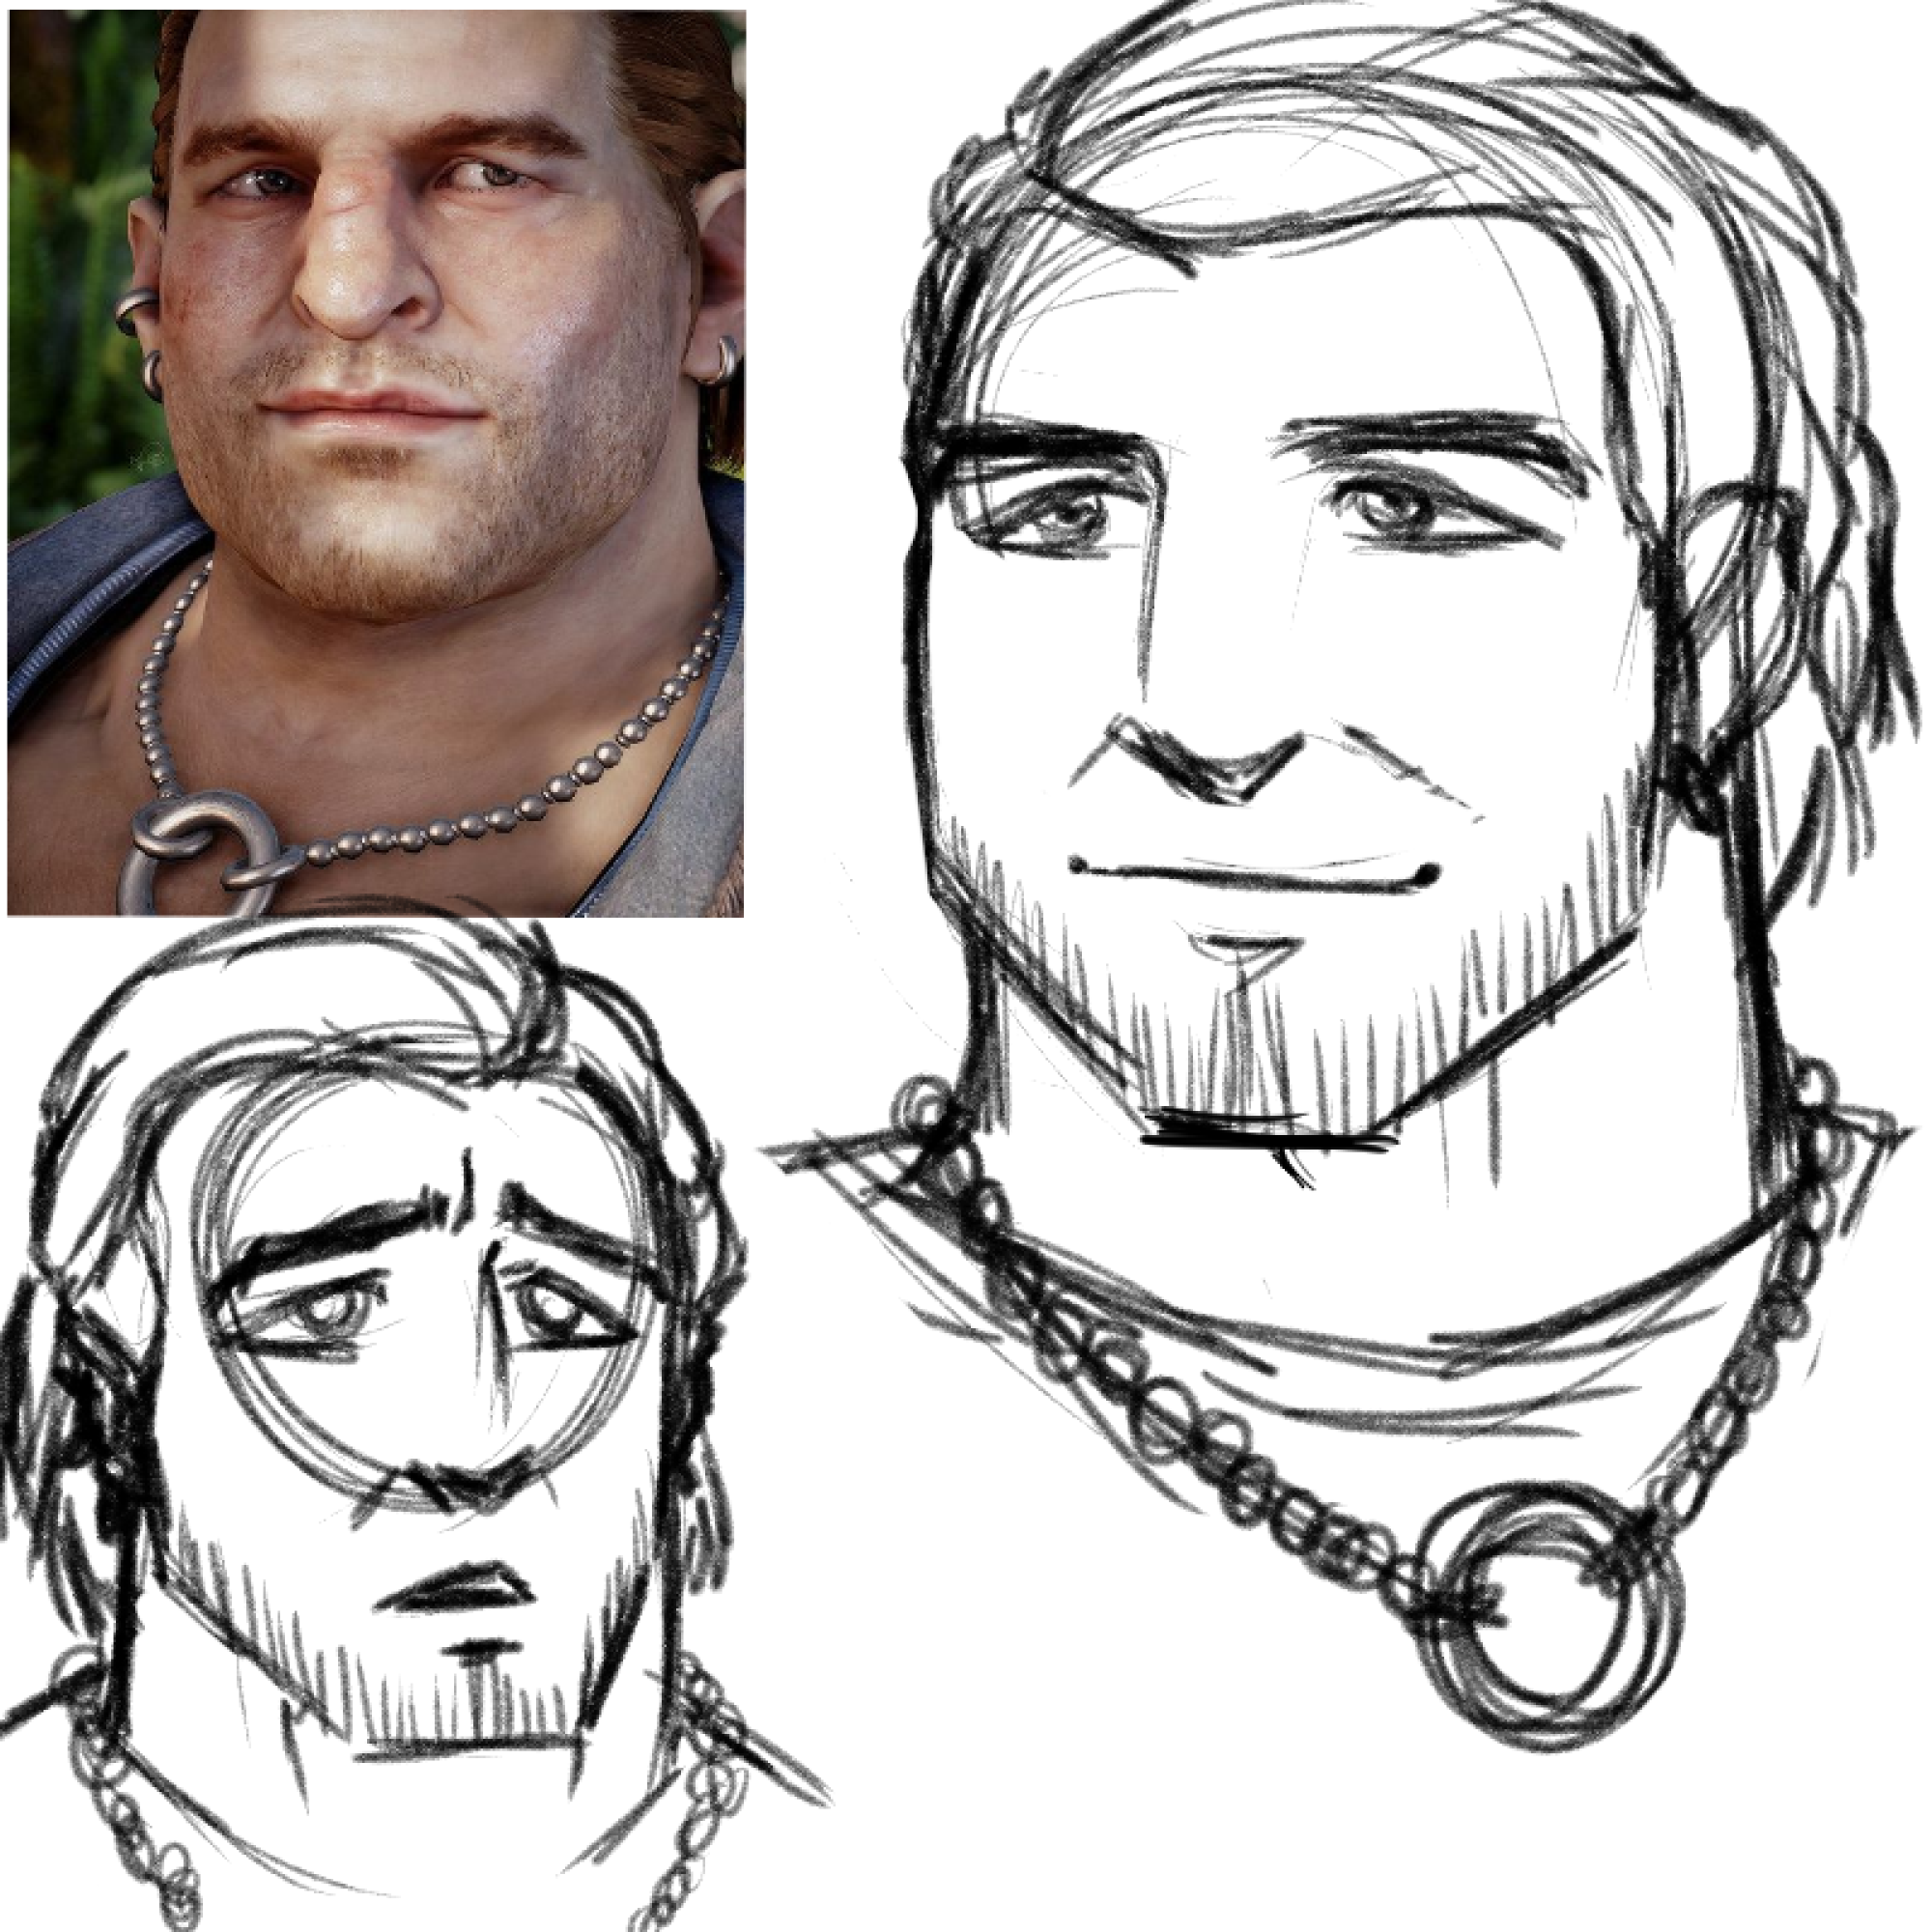 Varric Tethras from Dragon Age: Inquisition sketched in my manga and anime inspired art style.